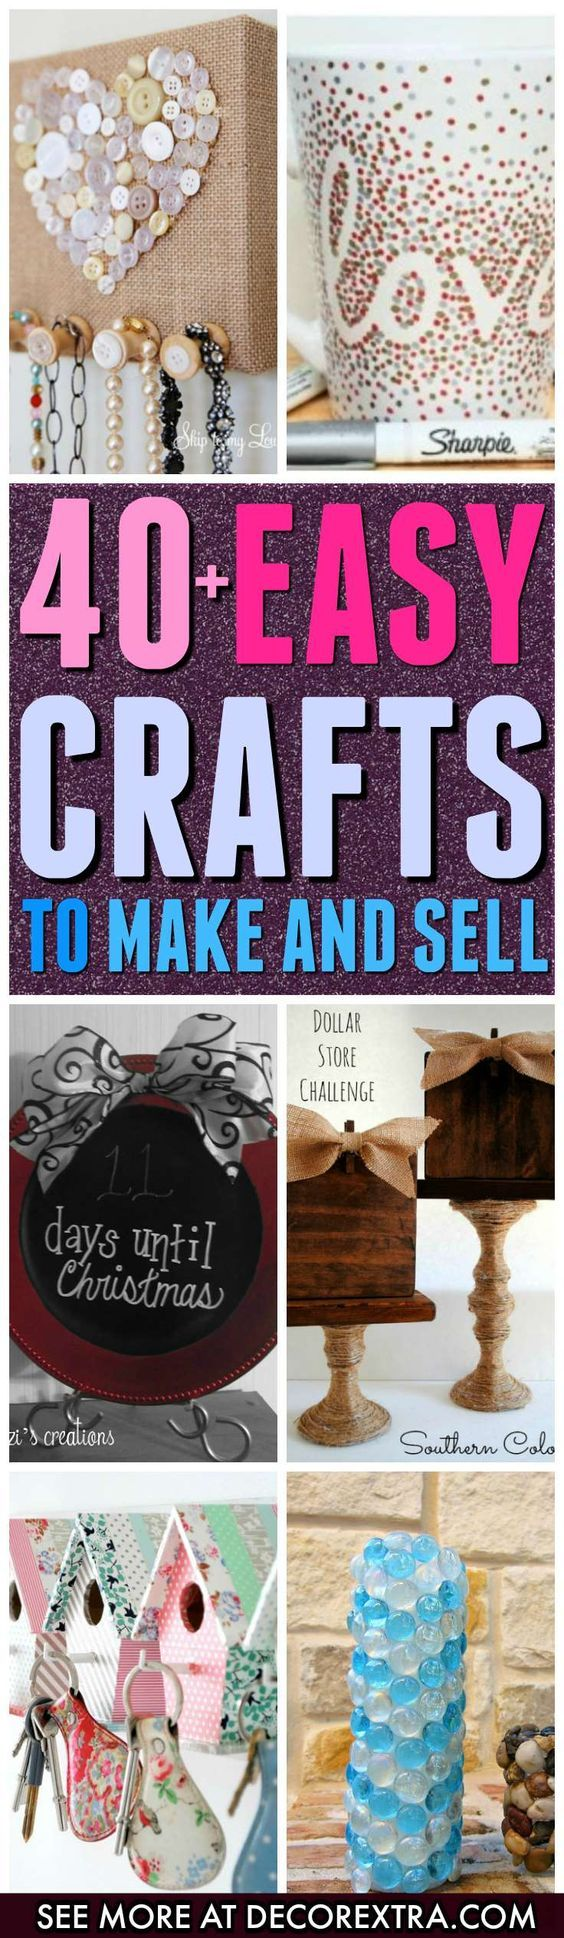 Crafts to make and sell you can make lots of different for Cheap crafts to make and sell